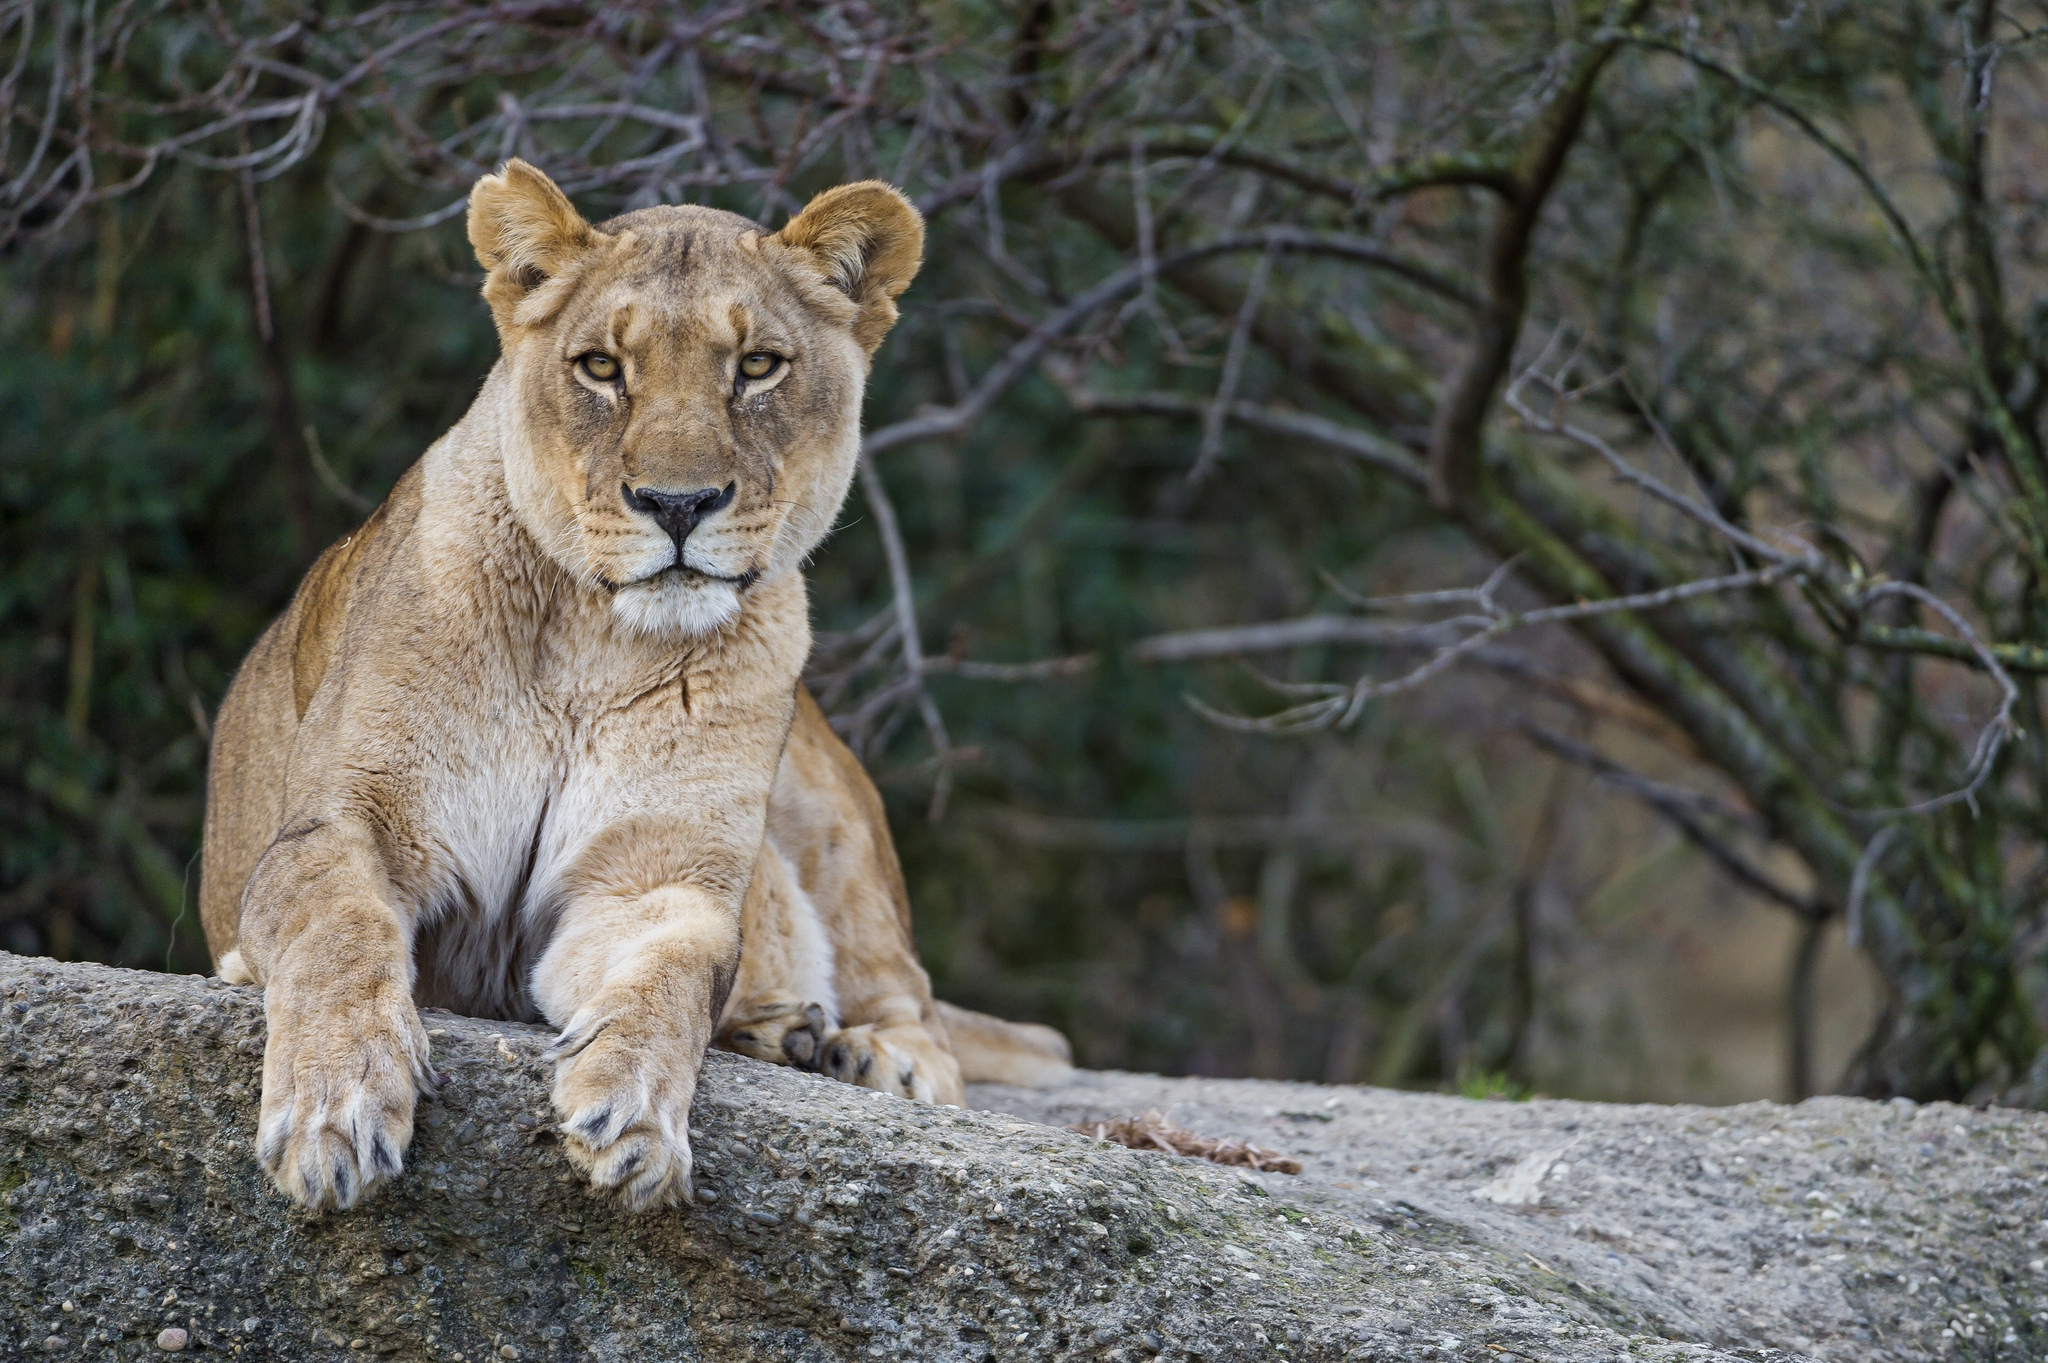 116007 download wallpaper Animals, Lion, Lioness, Muzzle, To Lie Down, Lie screensavers and pictures for free